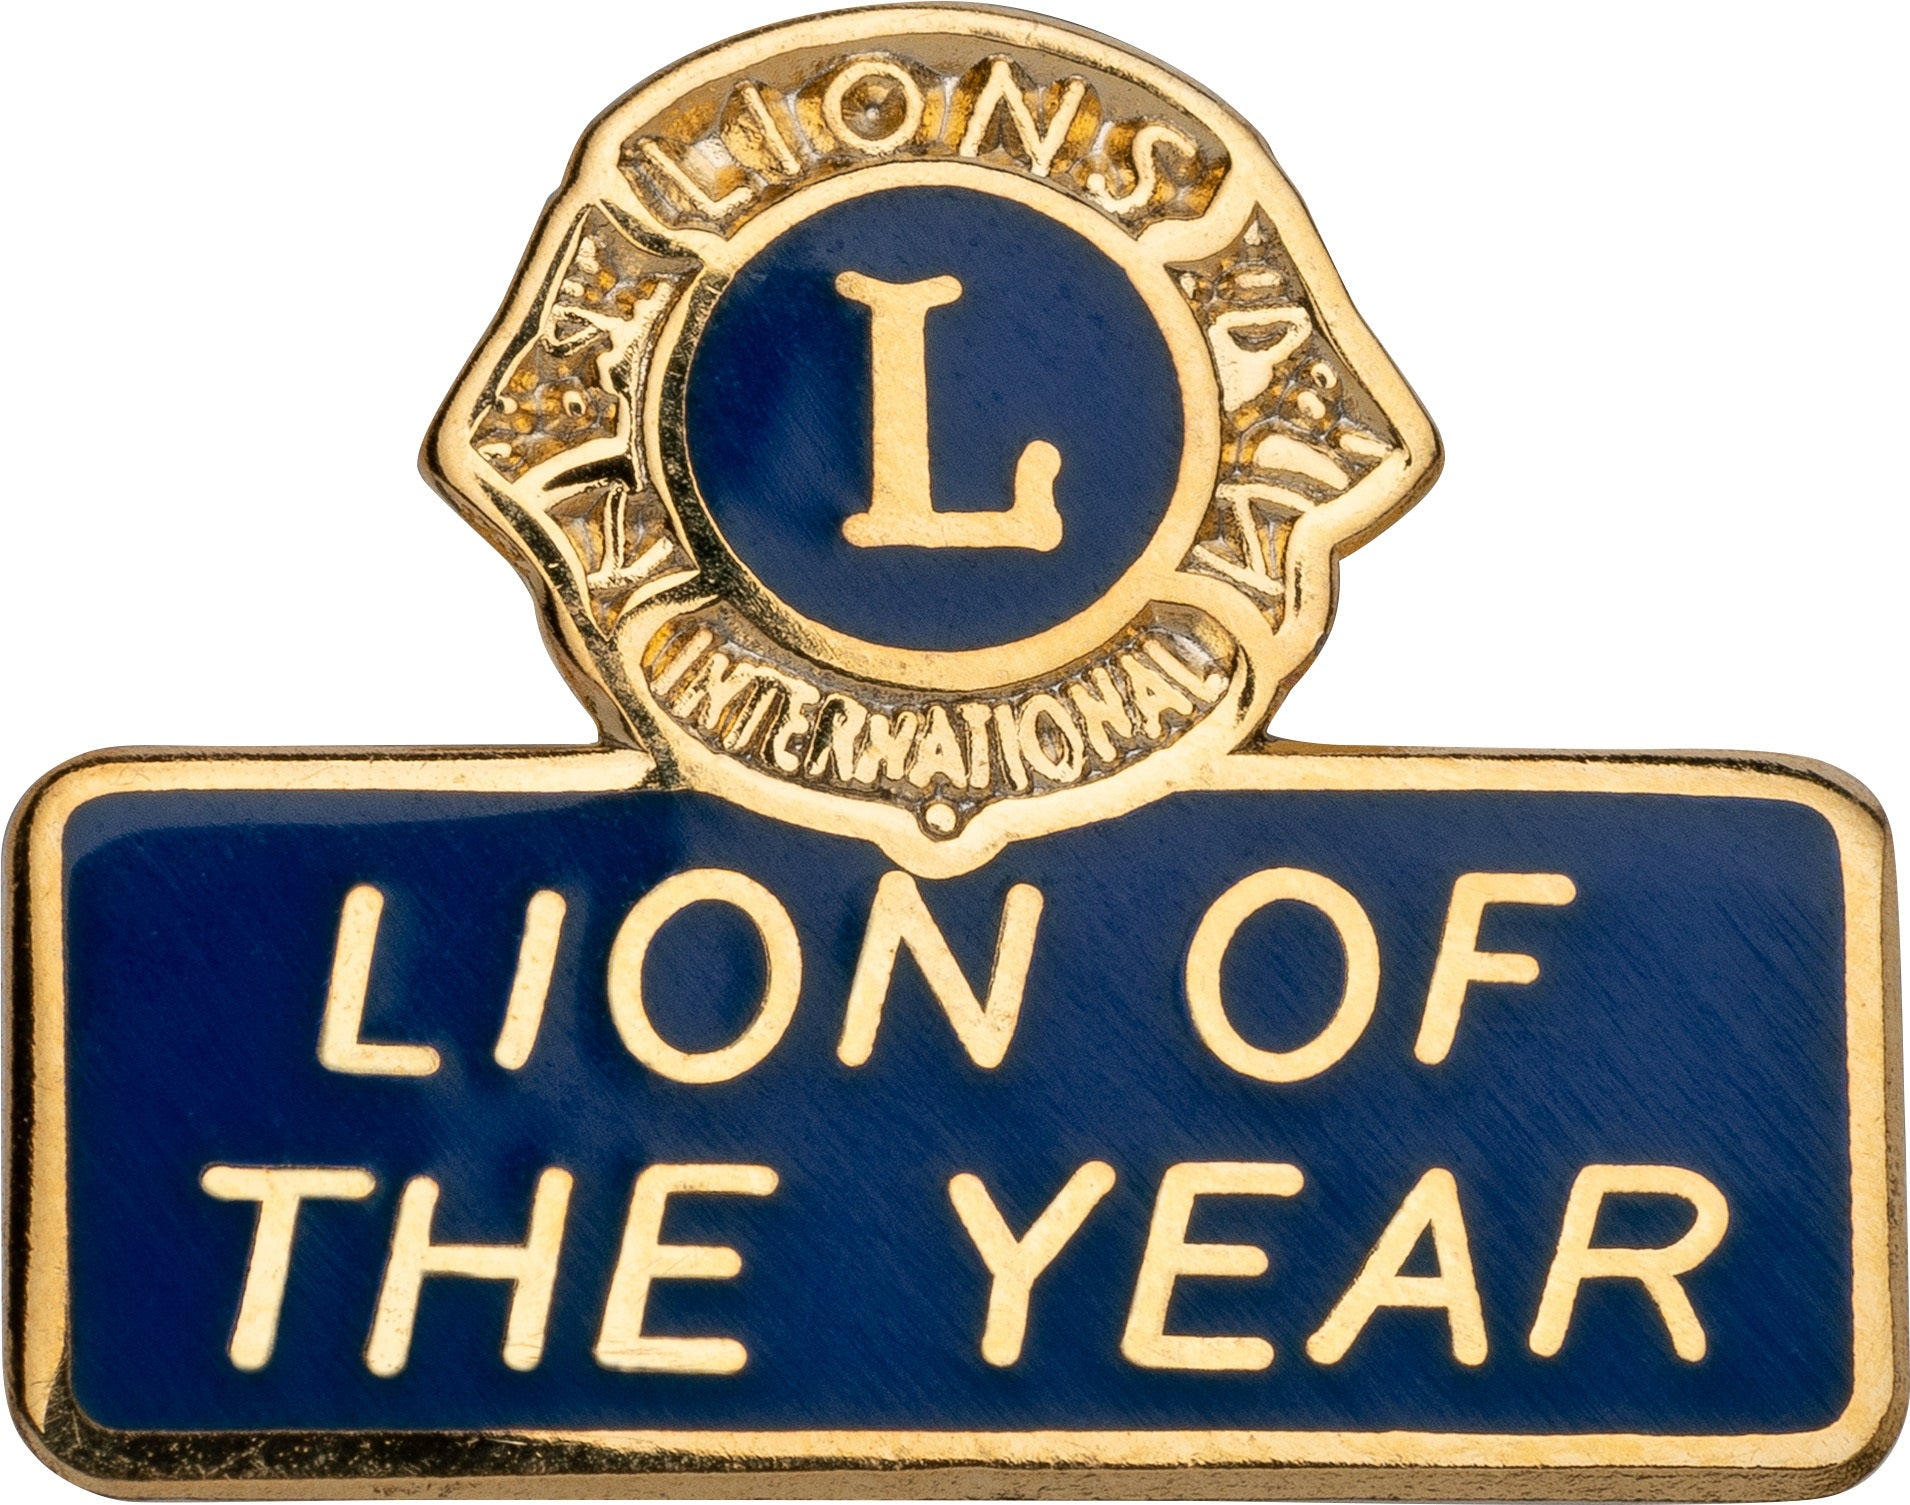 LION OF THE YEAR LAPEL TACK